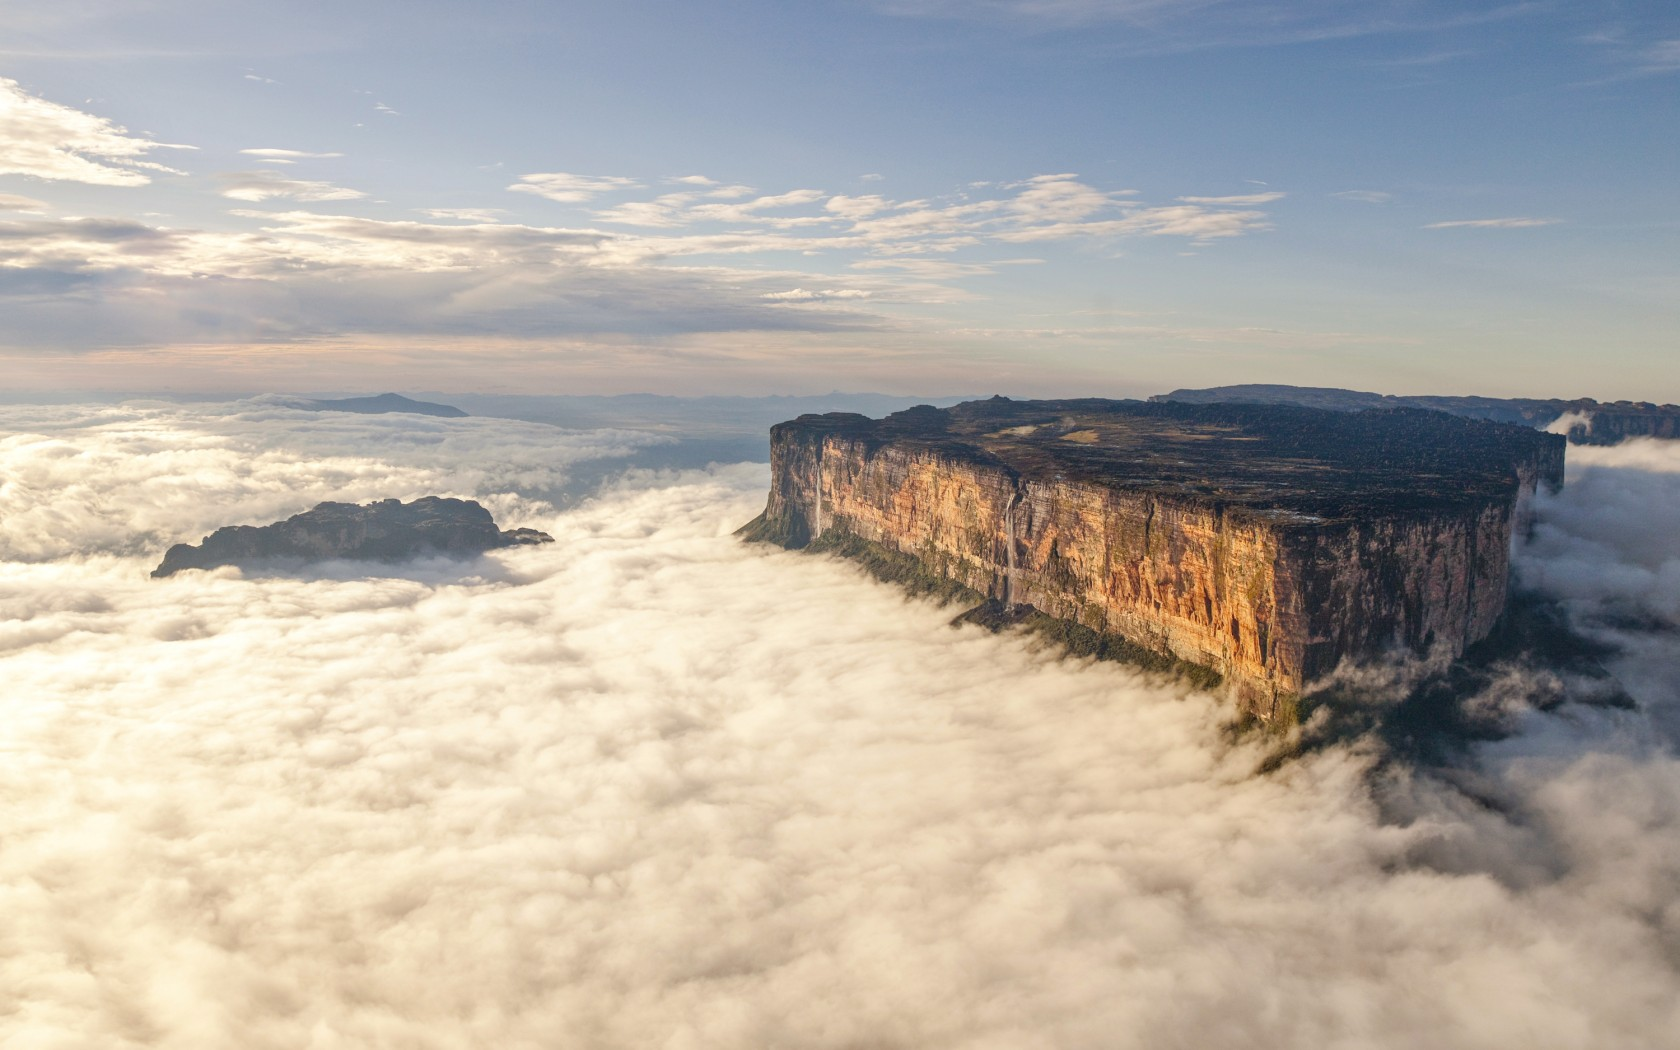 Mount Roraima ! The Oldest Geological Formations on Earth